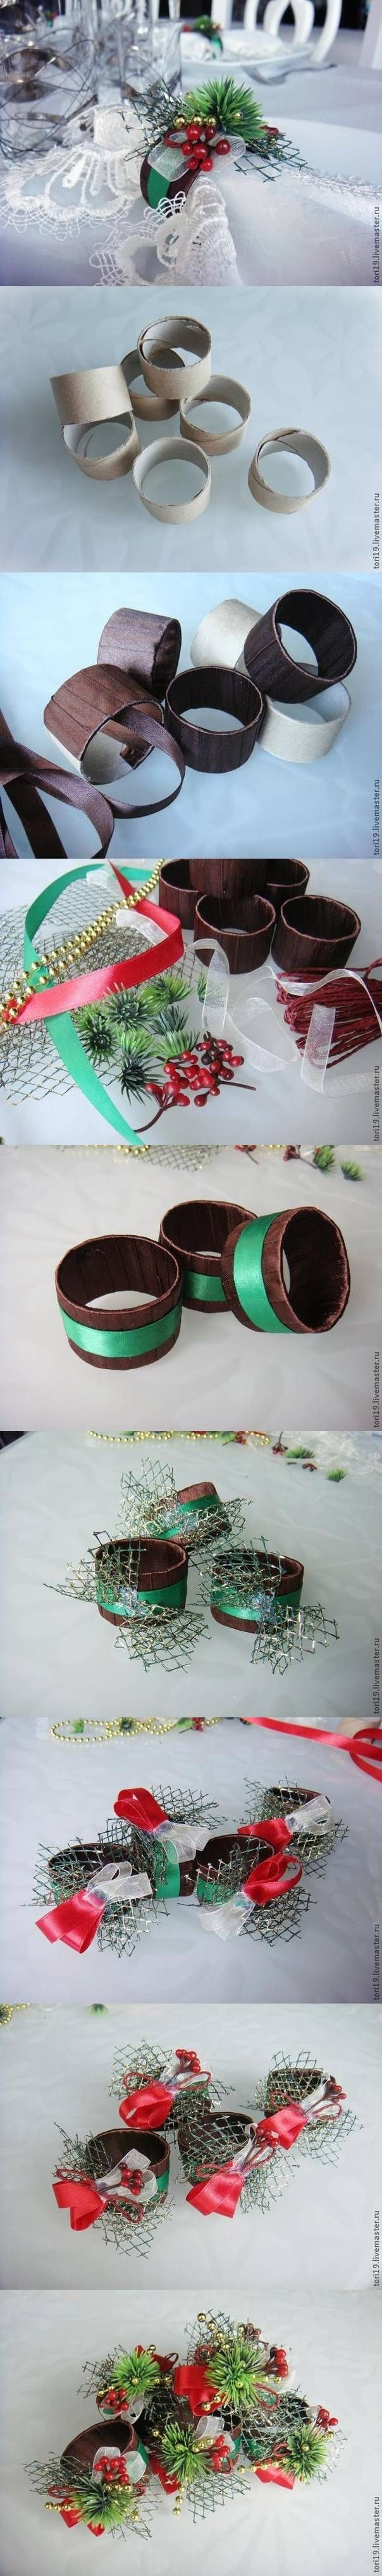 How to make toilet paper napkin rings diy christmas diy crafts do it how to make toilet paper napkin rings diy christmas diy crafts do it yourself diy projects solutioingenieria Images